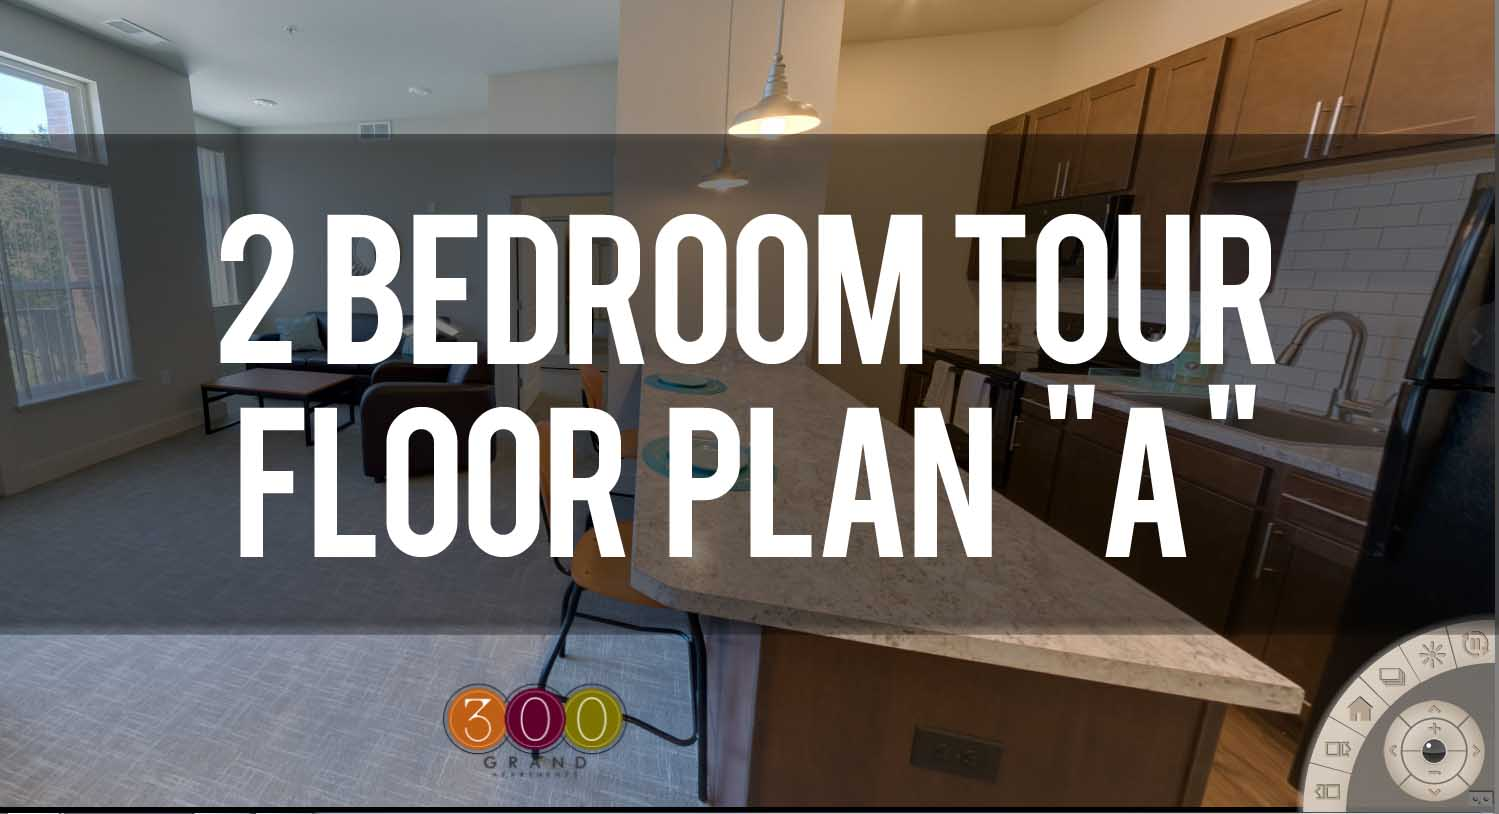 Virtual Tour of 2 Bedroom at 300 Grand Apartments